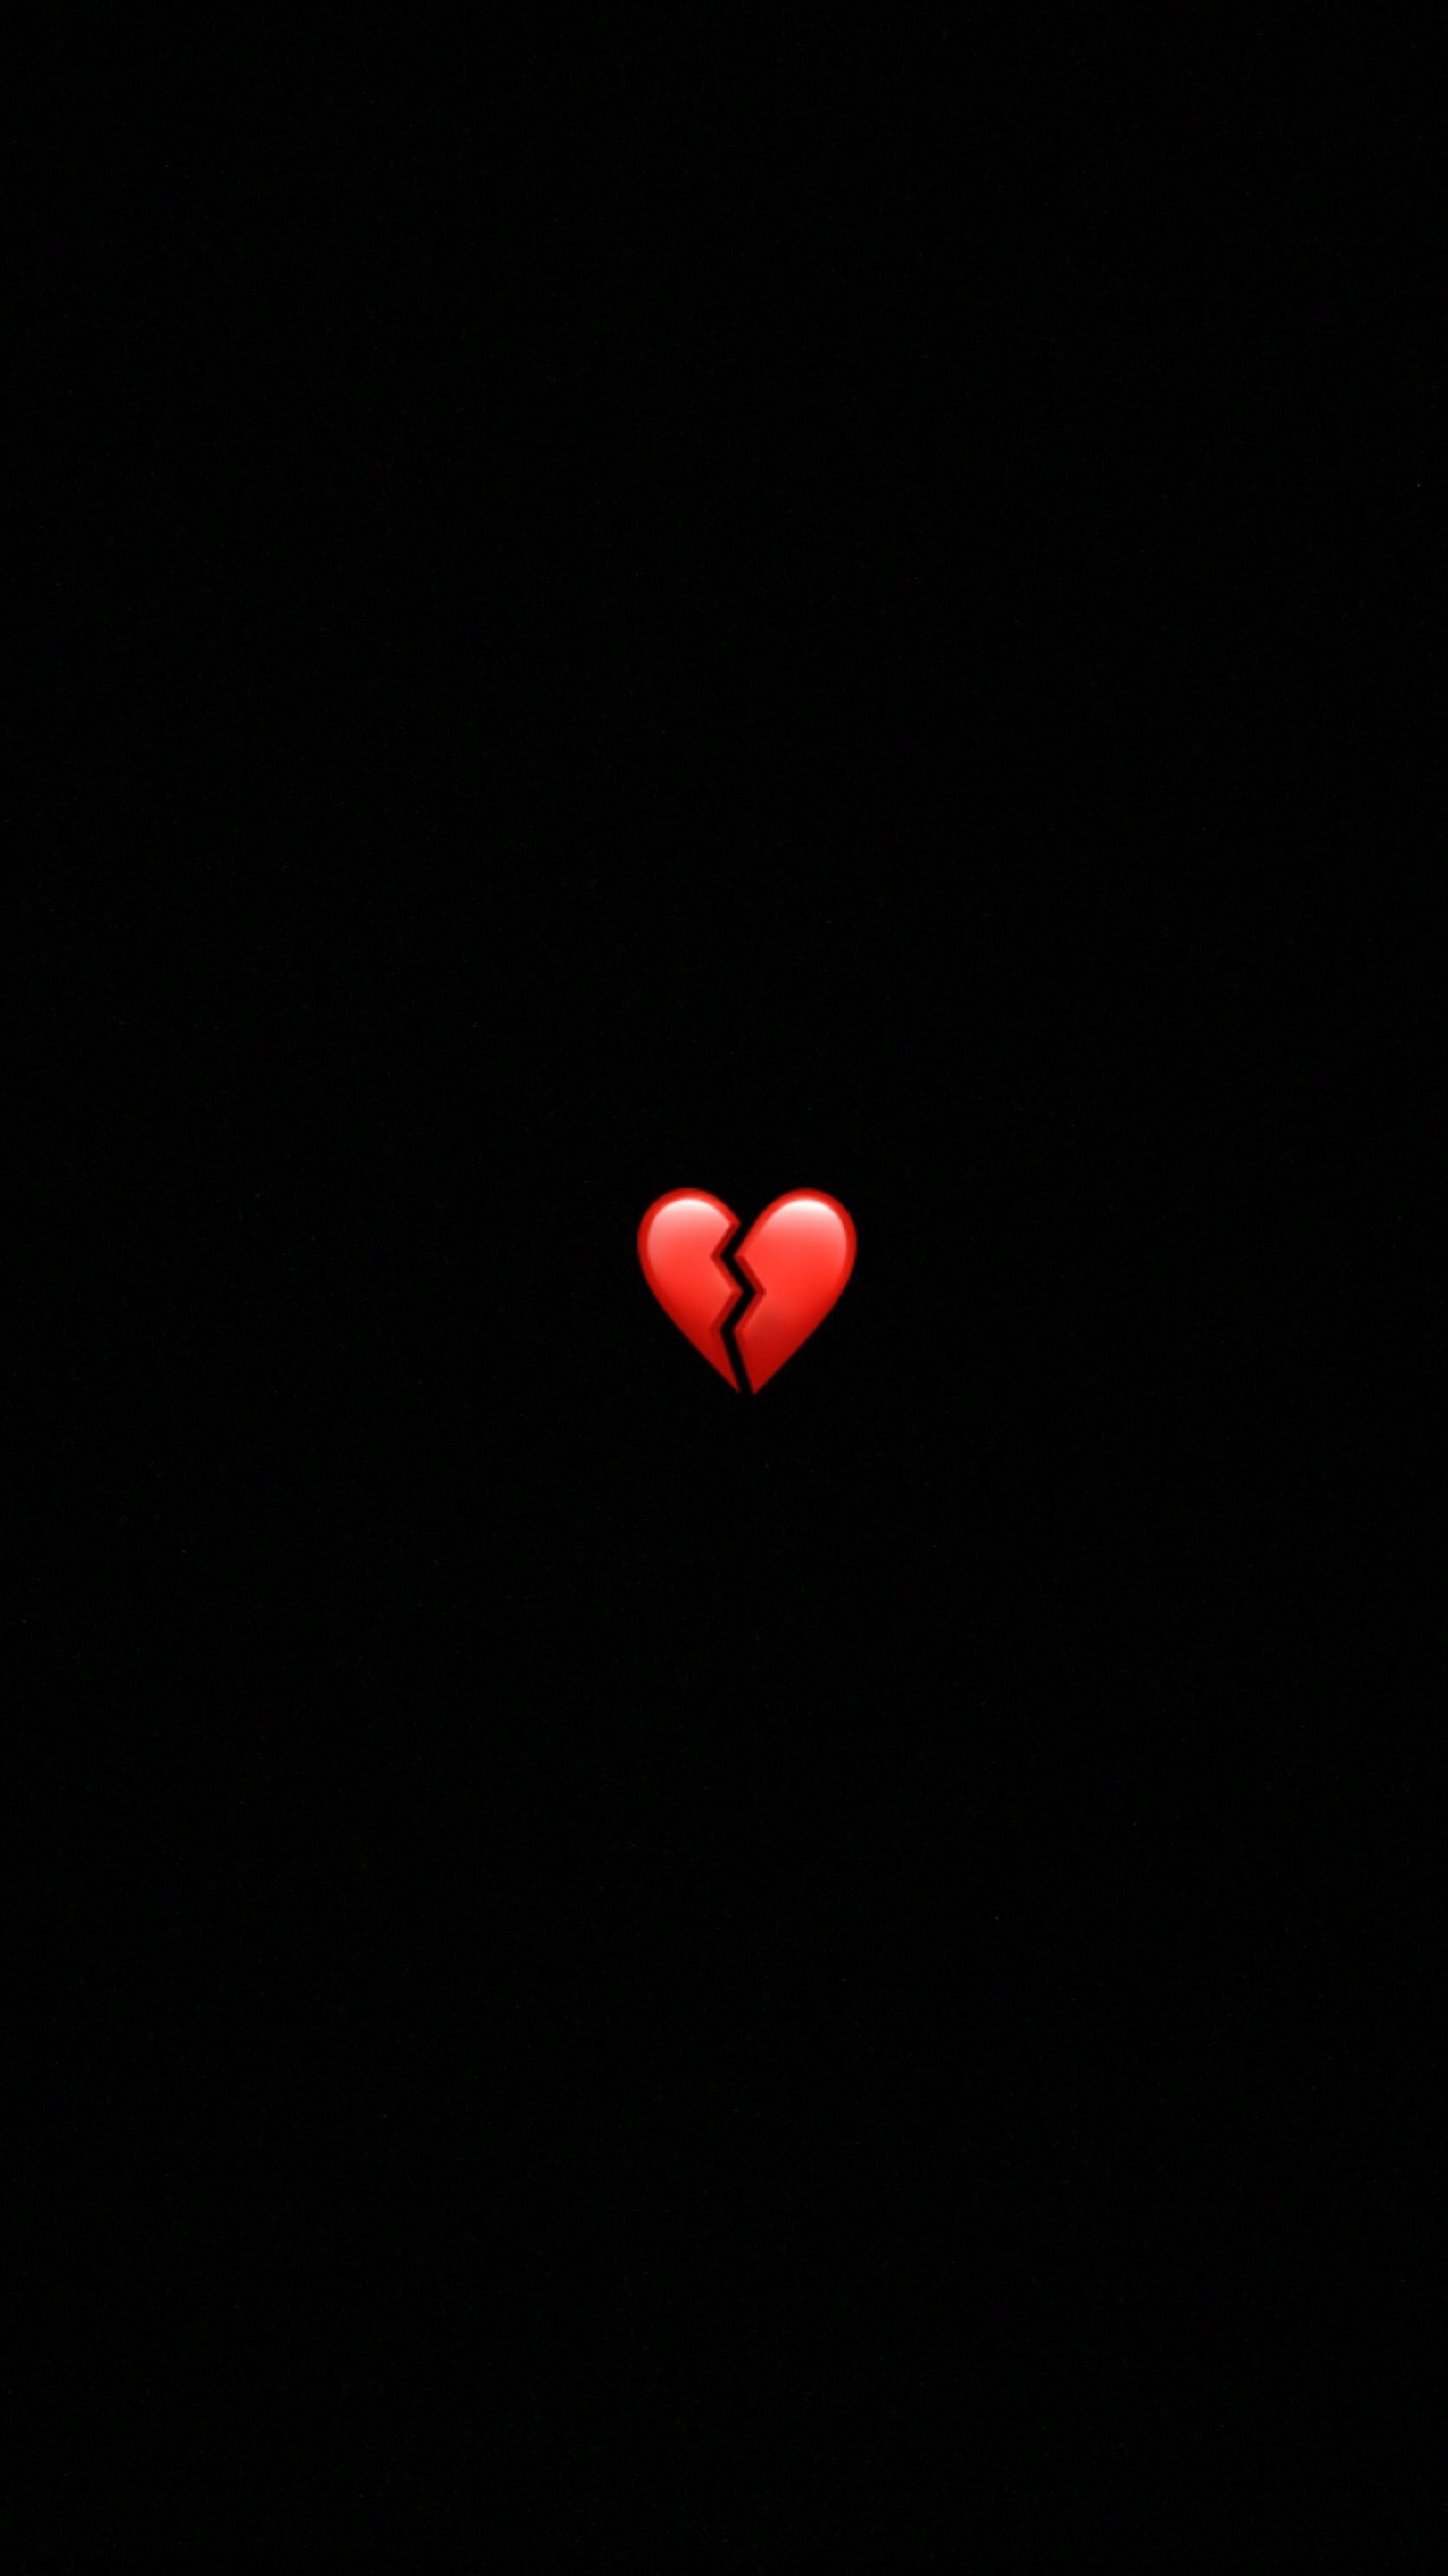 Dark Heart Wallpapers Top Free Dark Heart Backgrounds